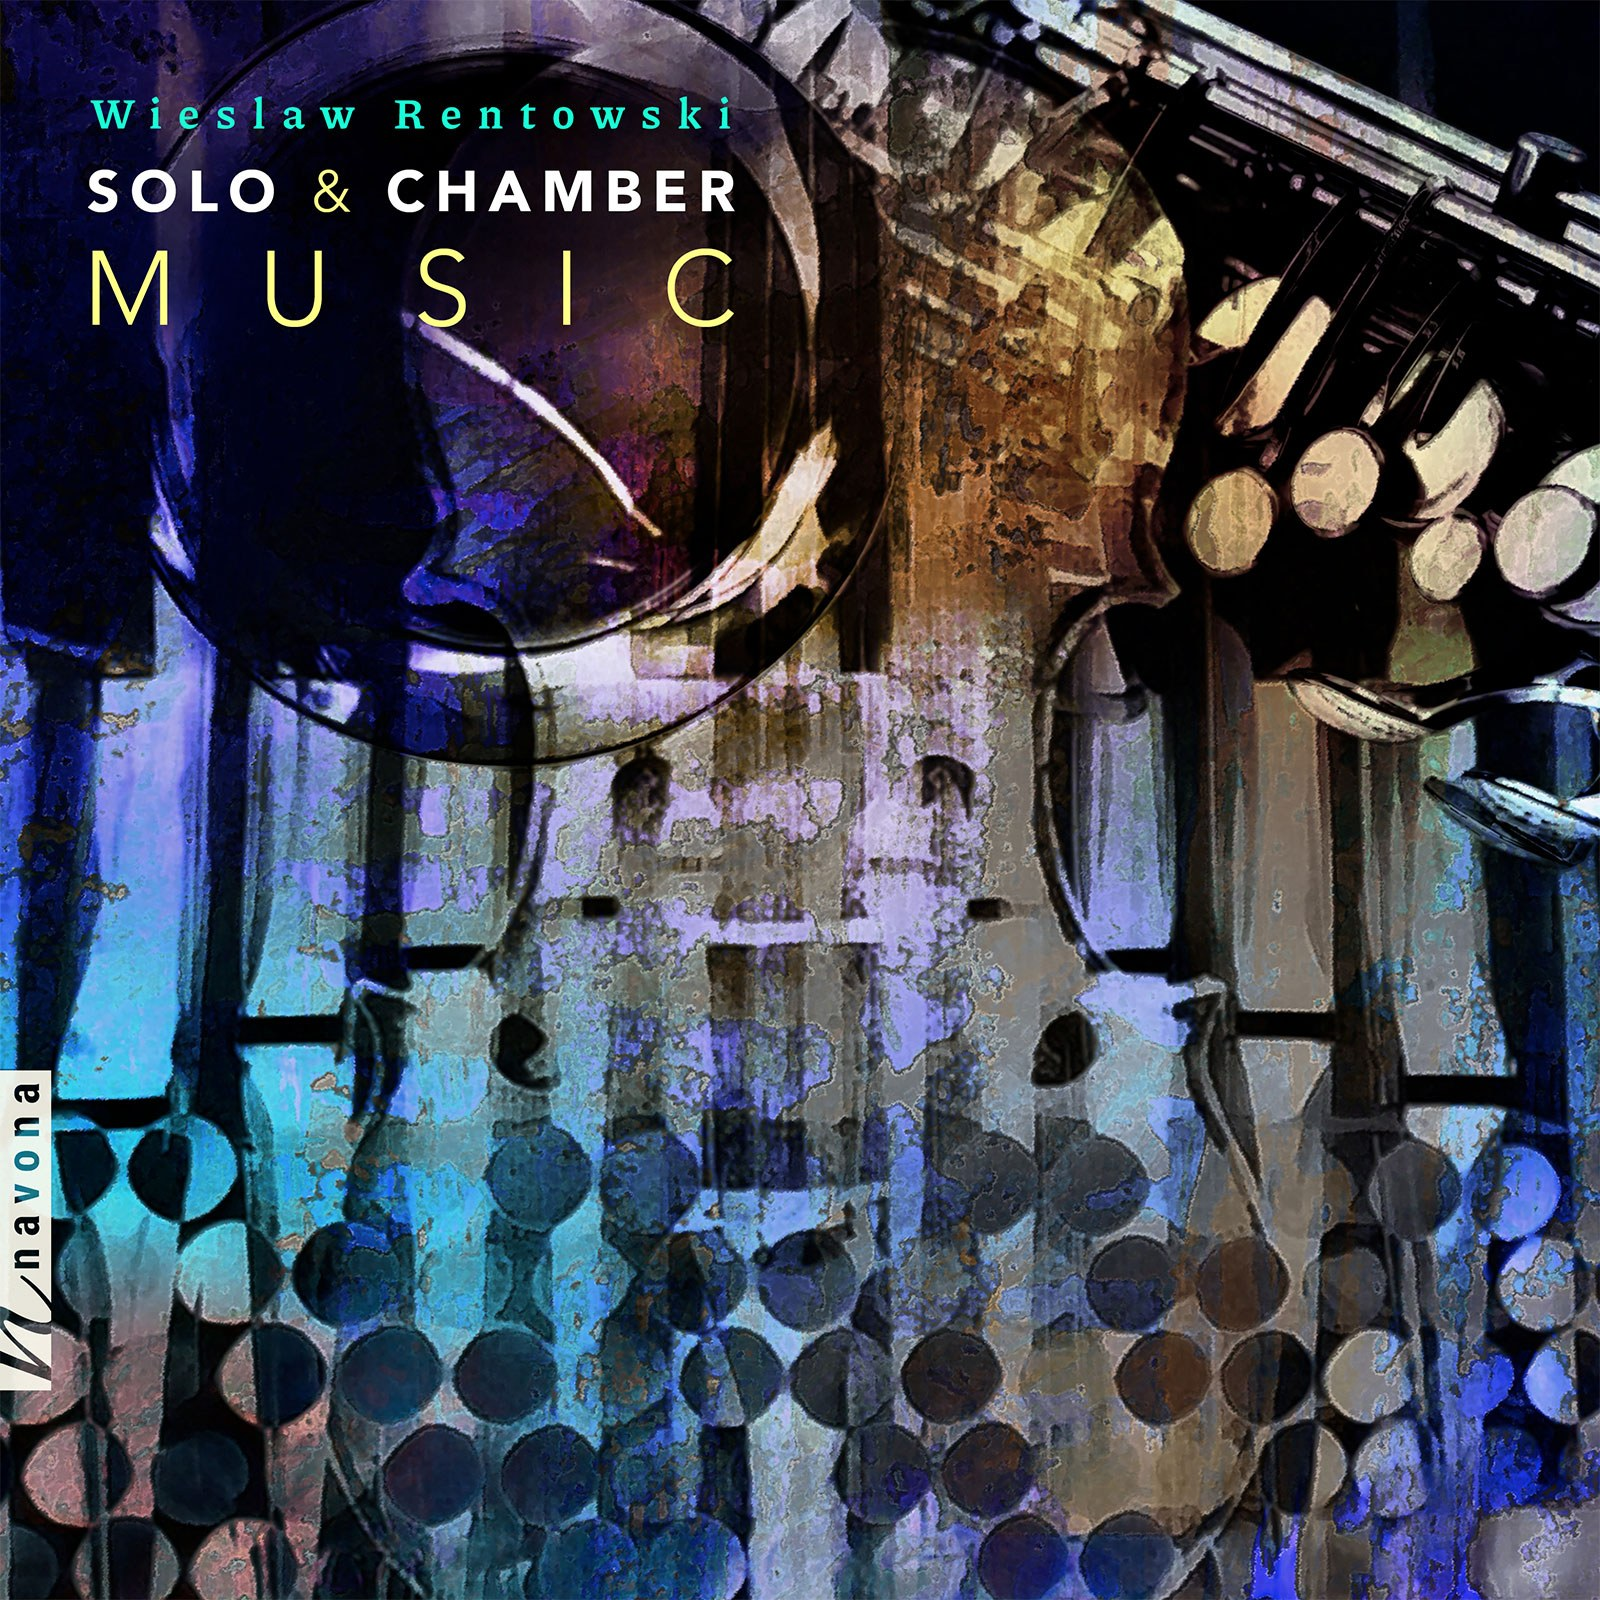 SOLO & CHAMBER MUSIC